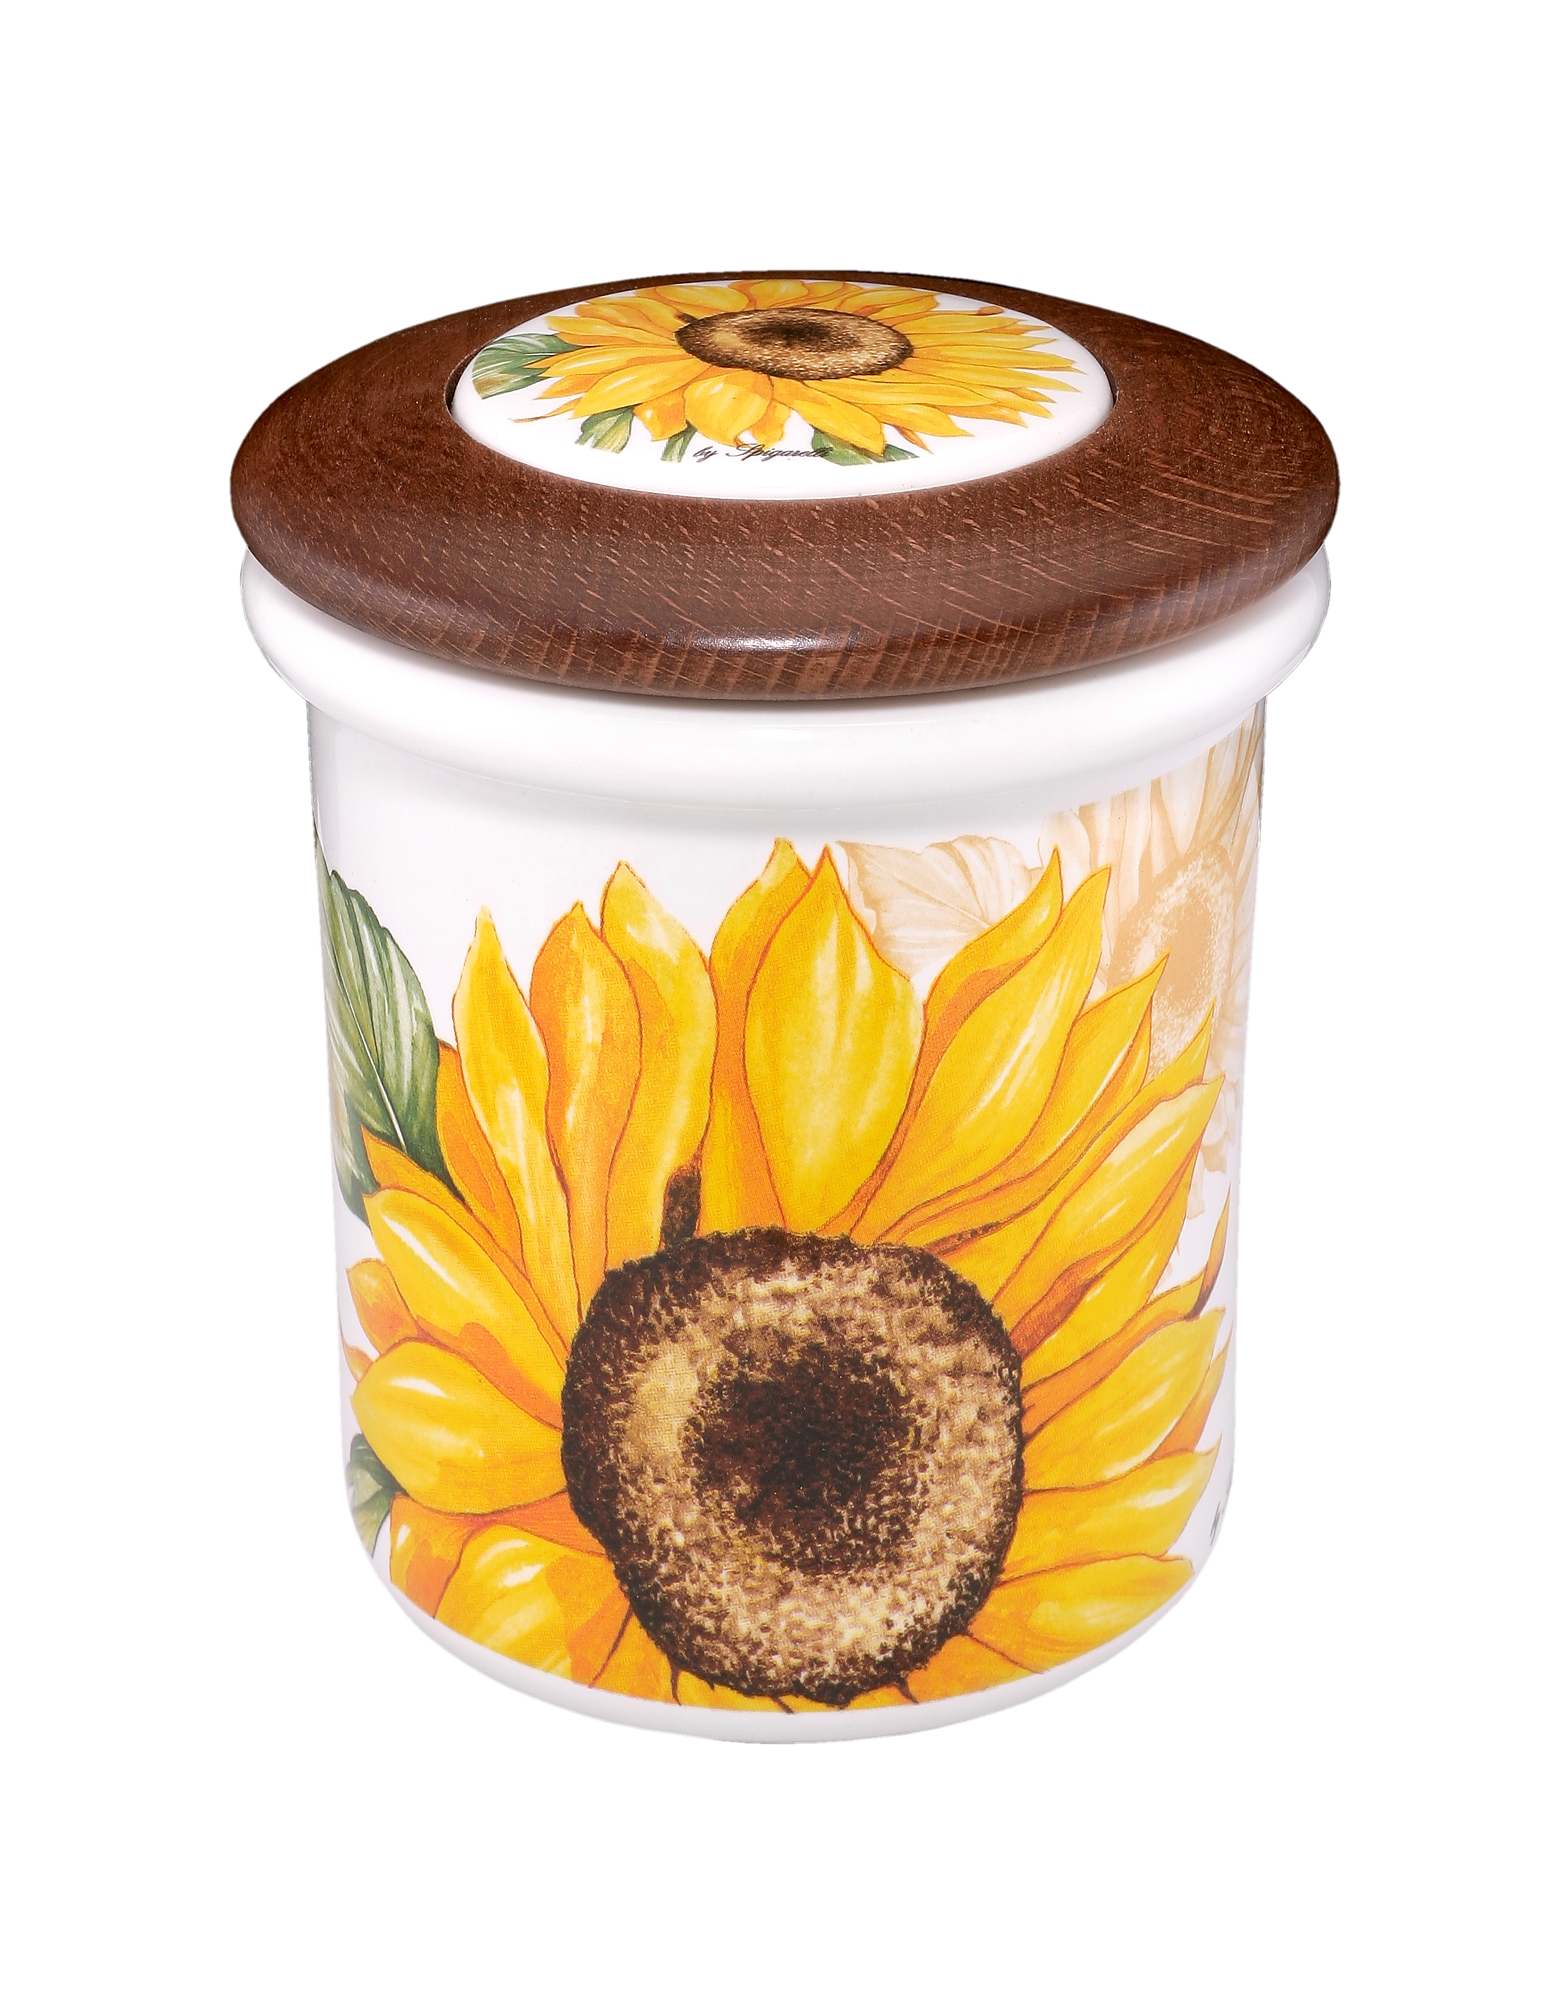 Image of Spigarelli Designer Kitchen & Dining, Sunflower Ceramic and Wood Jar